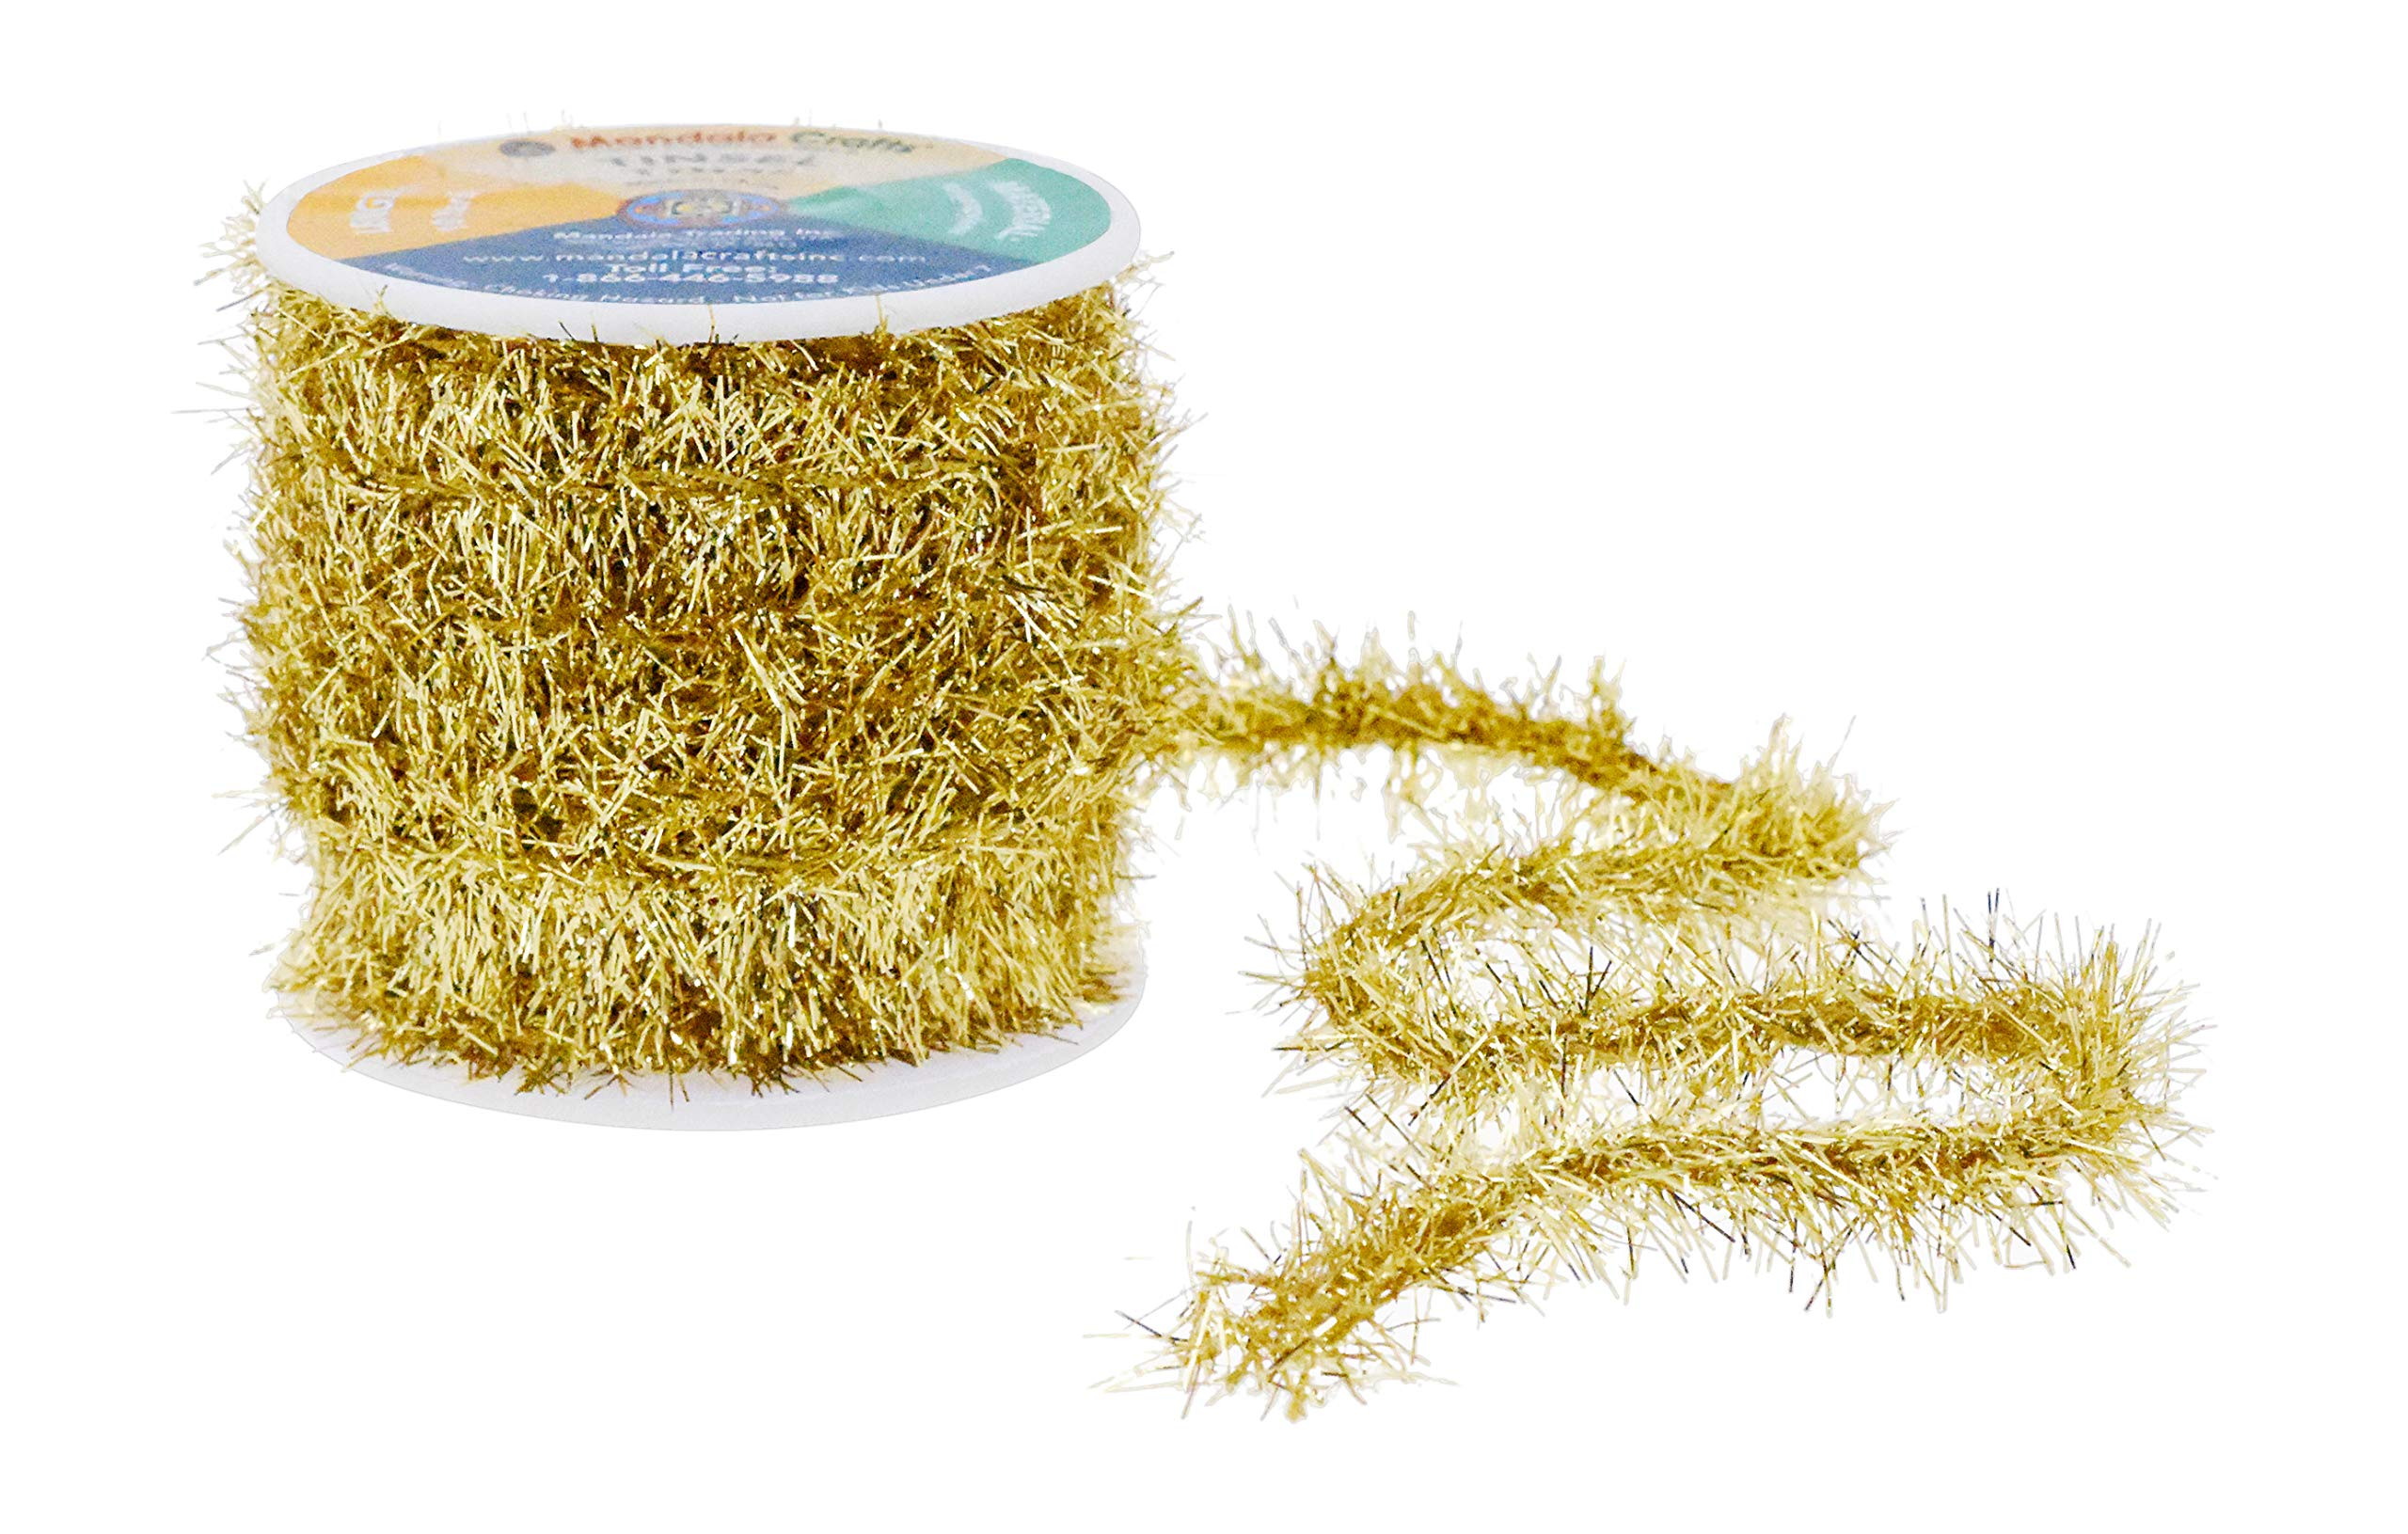 Mandala Crafts Tinsel Garland Décor – Thin Tinsel Ribbon - Metallic Mini Garland with Wire for Christmas Tree Decoration Wedding Birthday Party Supplies Gold 0.75 Inch 10 Yards